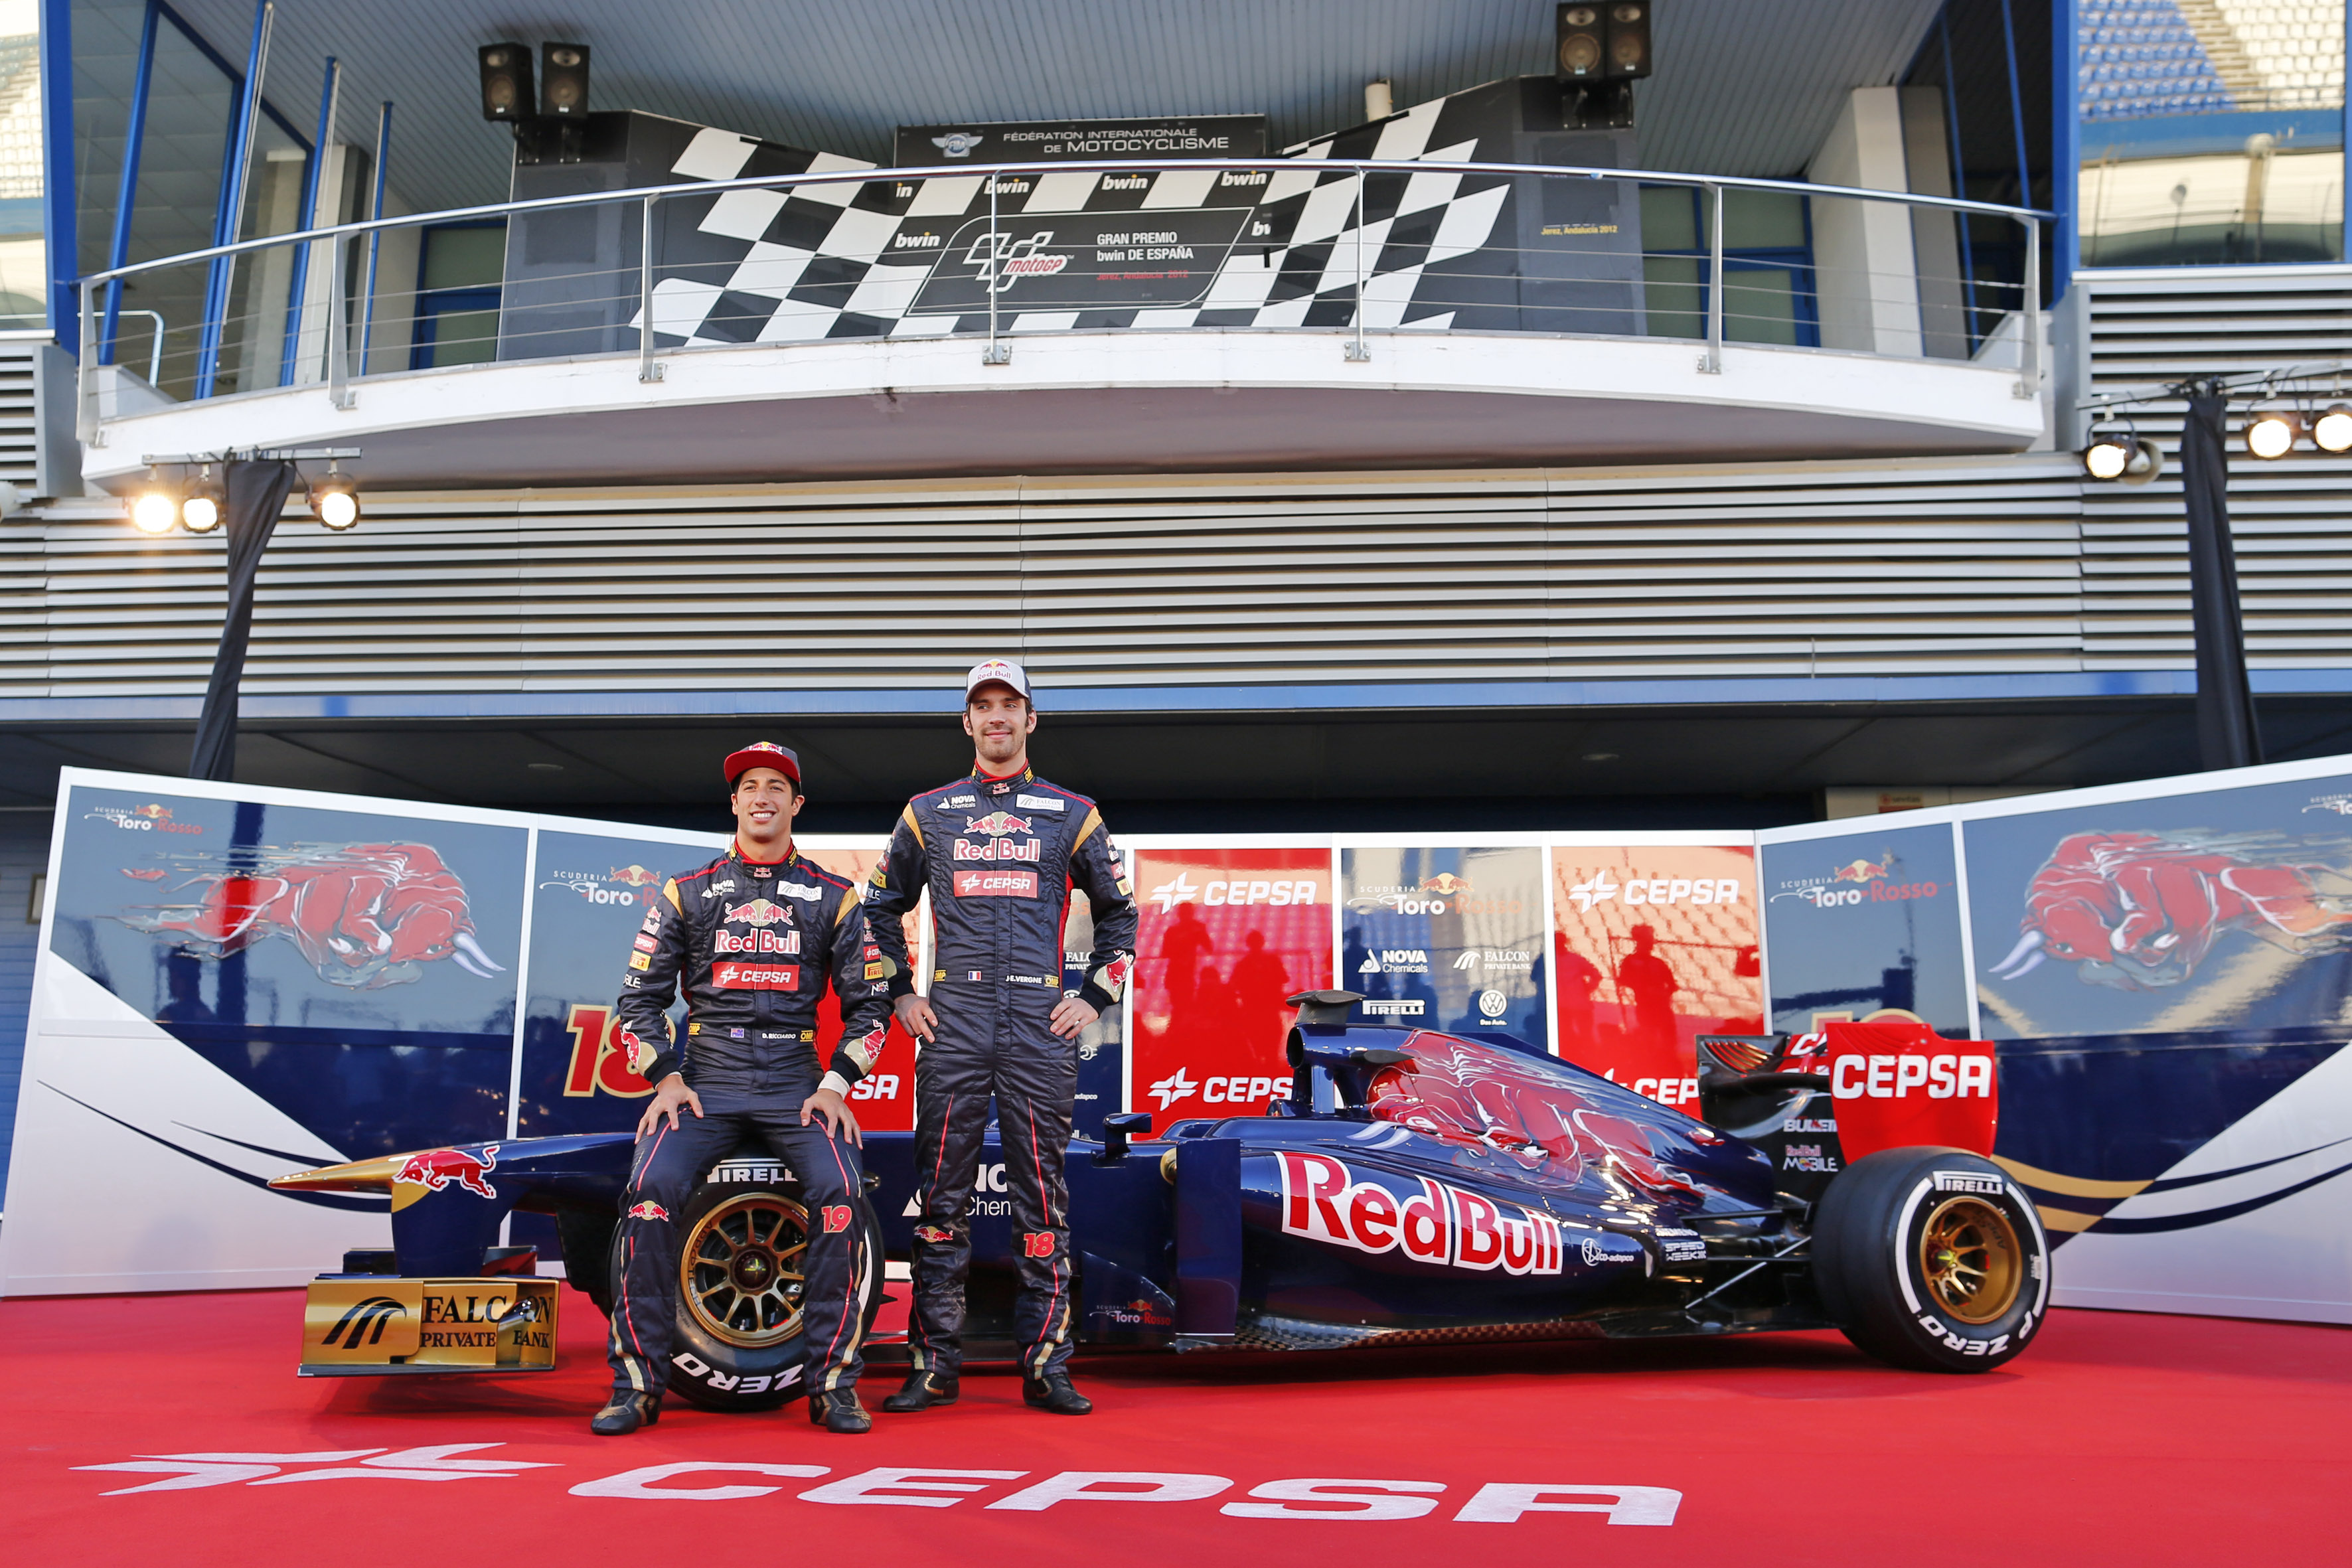 F1 2013 - New car launches